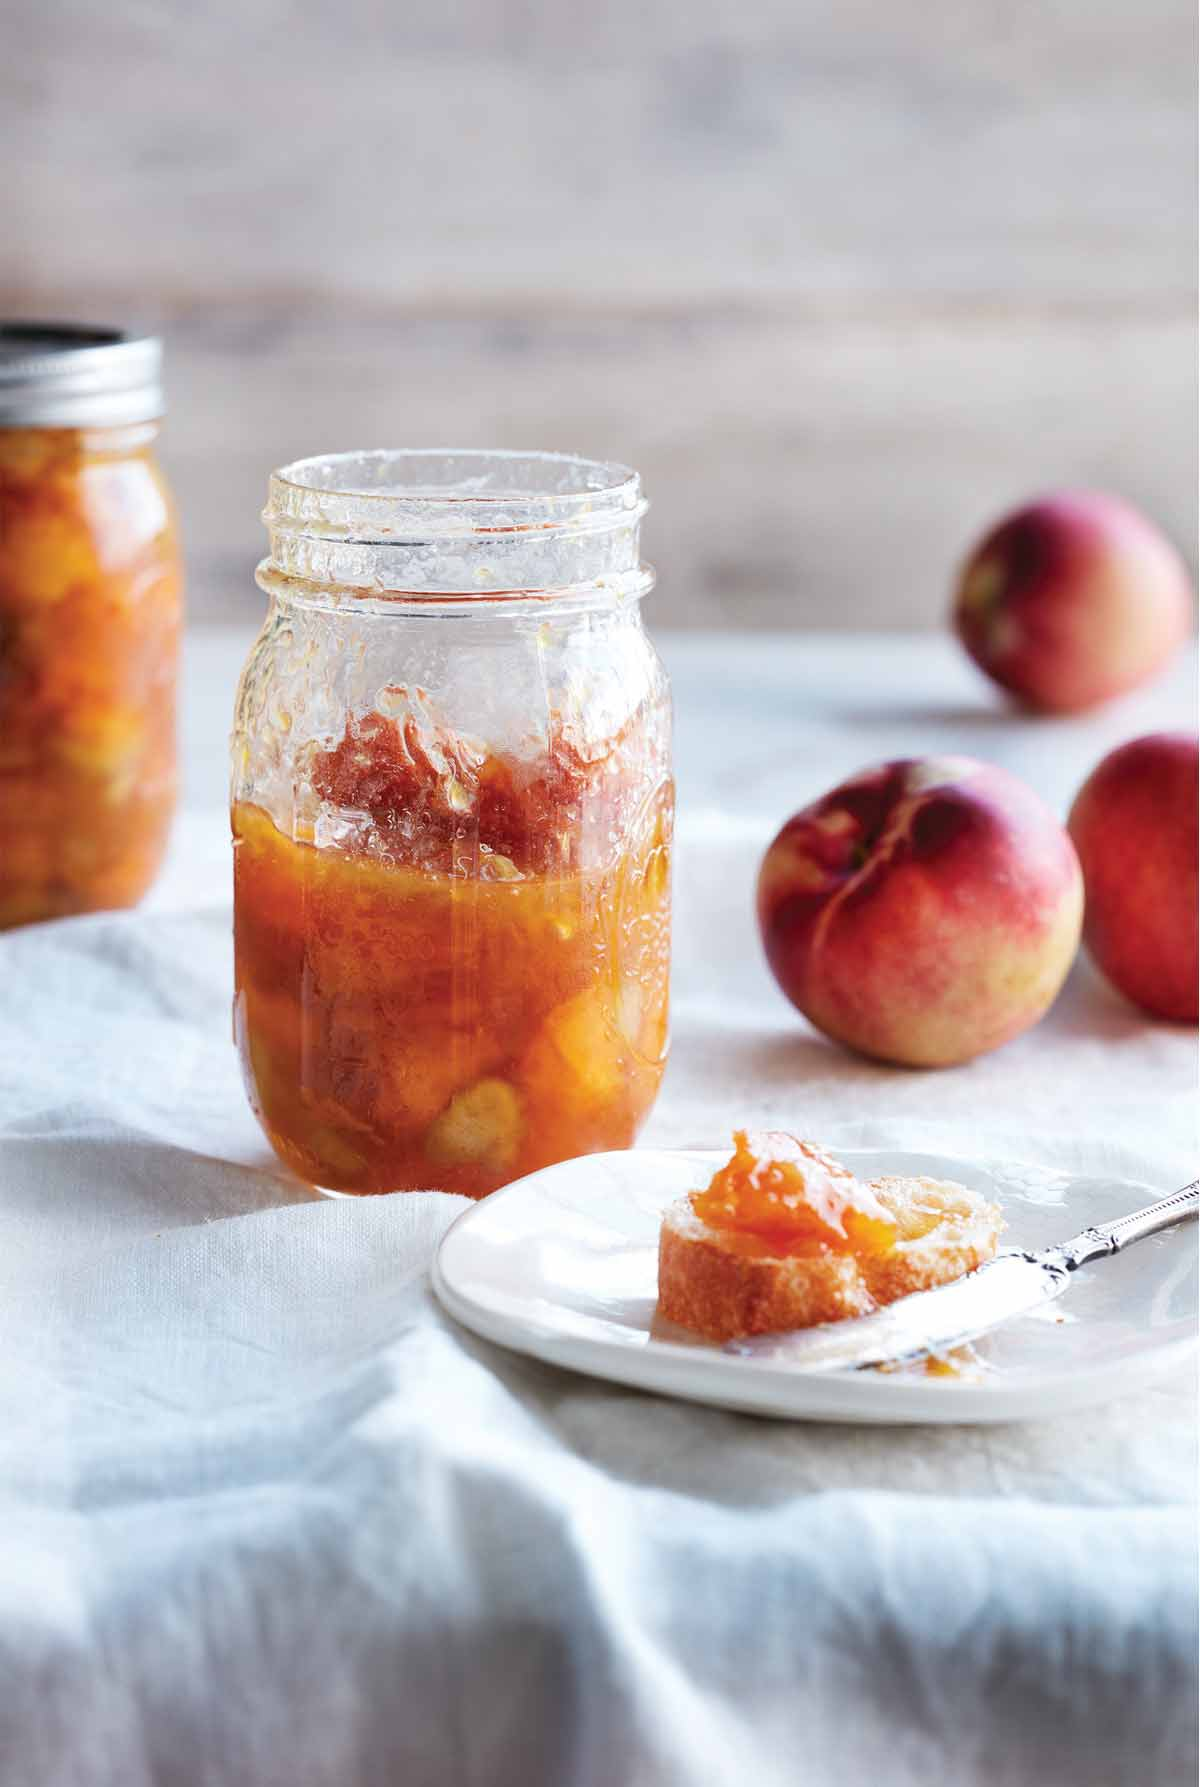 Two jars of peach and rhubarb jam with some peaches in the background and a plate with a piece of bread topped with the jam.